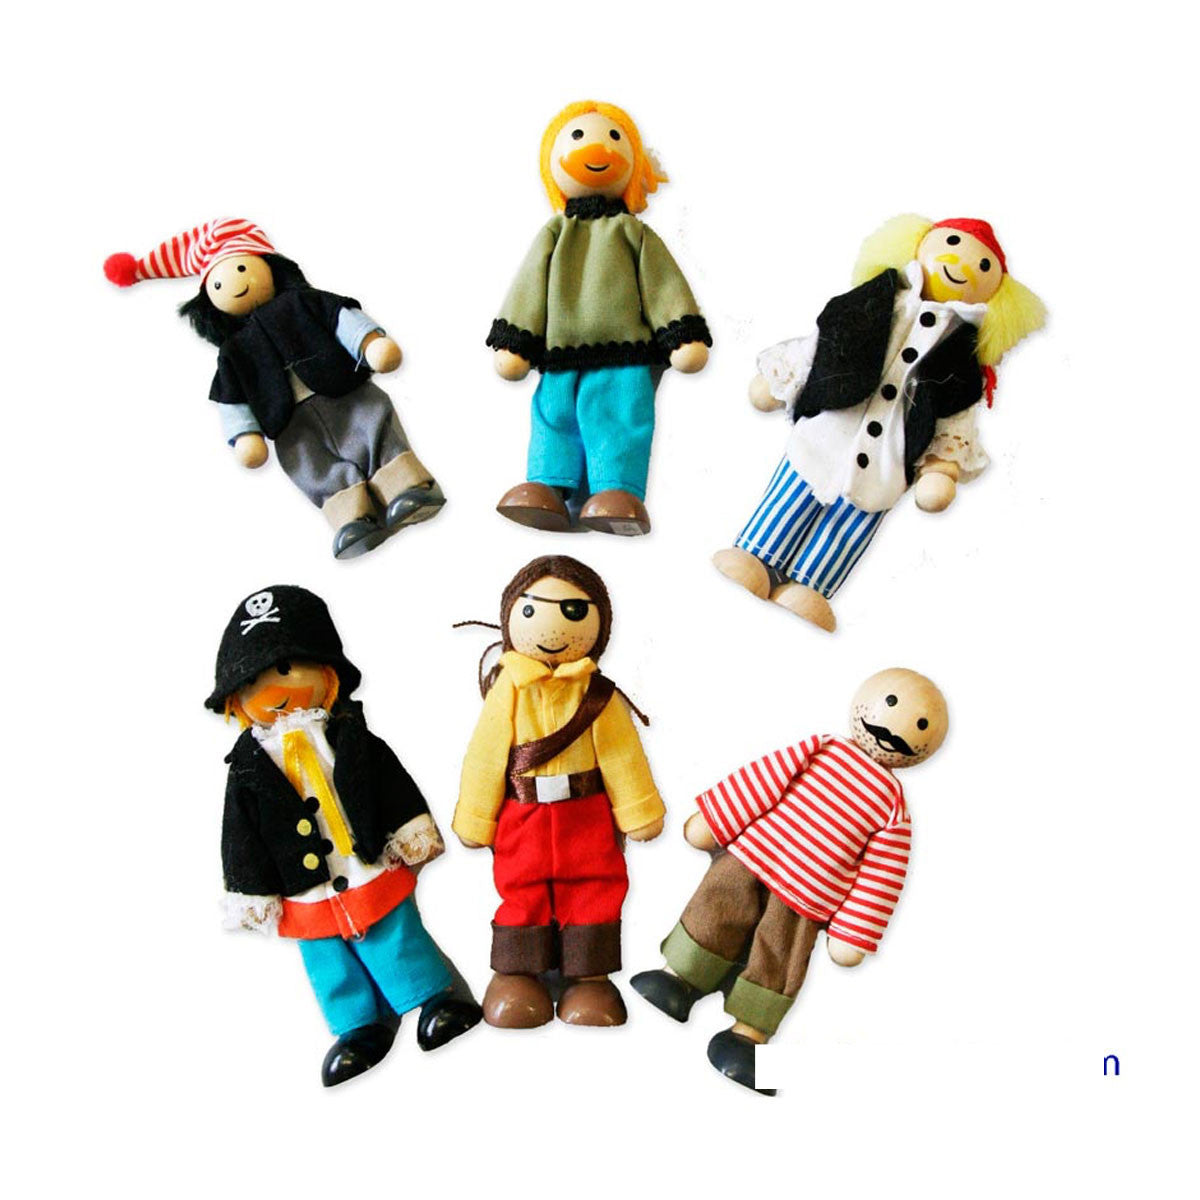 Wooden Pirate People - Set of 6 Fun Factory Dolls, Playsets & Toy Figures at Little Earth Nest Eco Shop